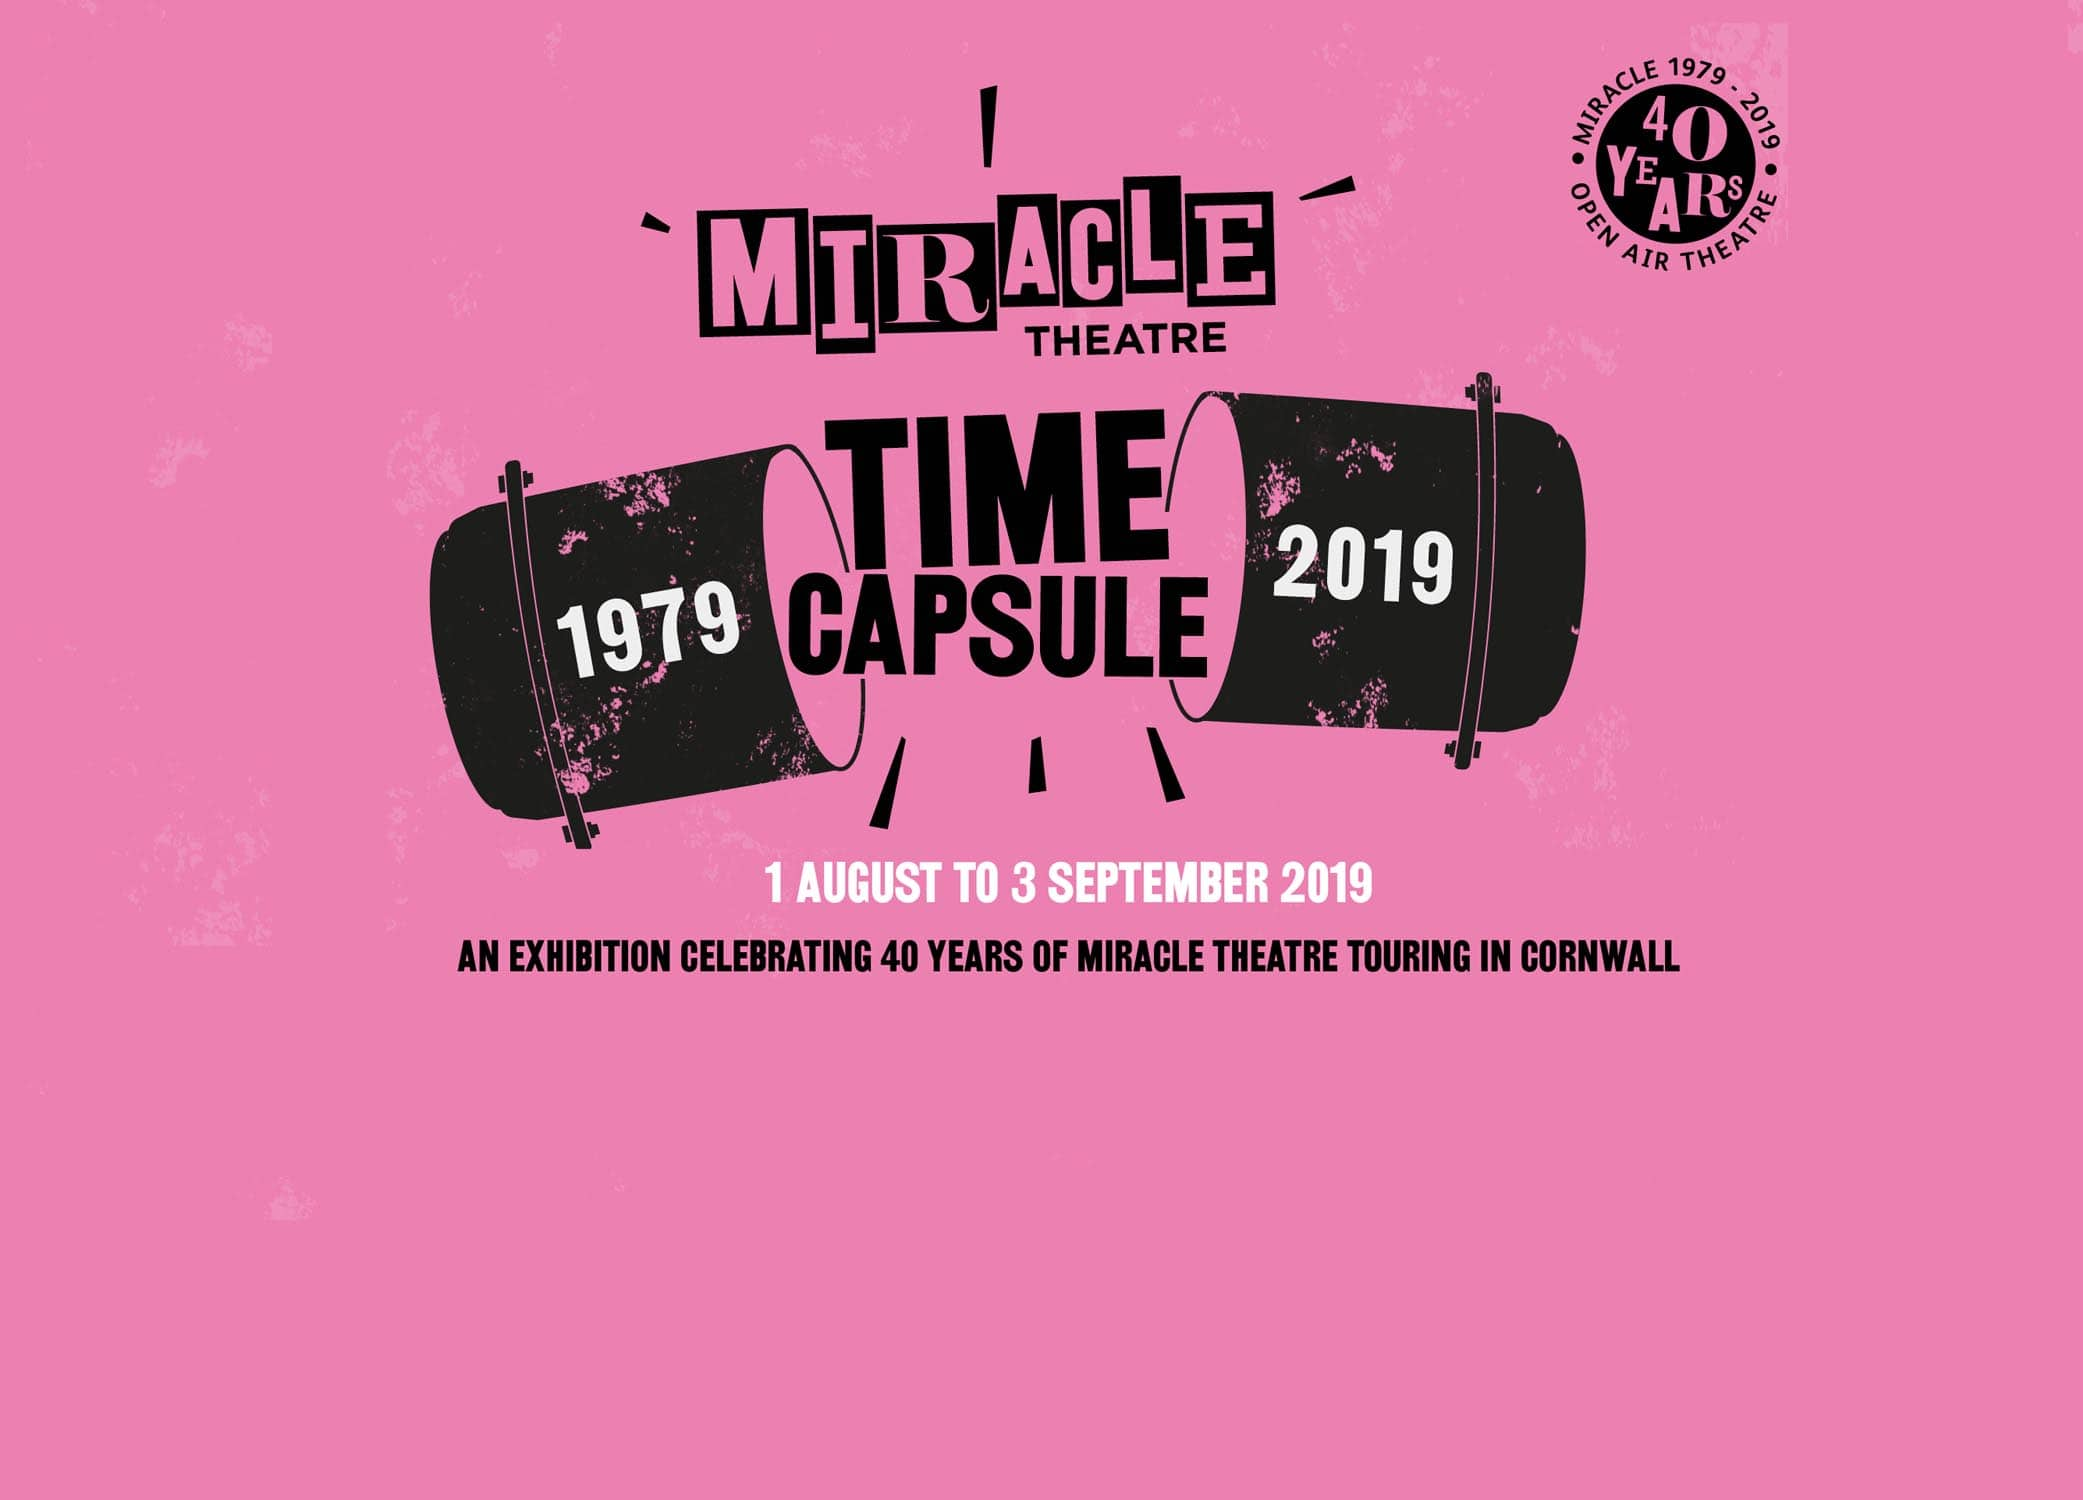 The Miracle Time Capsule is an exhibition celebrating 40 years of Miracle Theatre at Museum of Cornish Life 1 Aug to 3 Sept